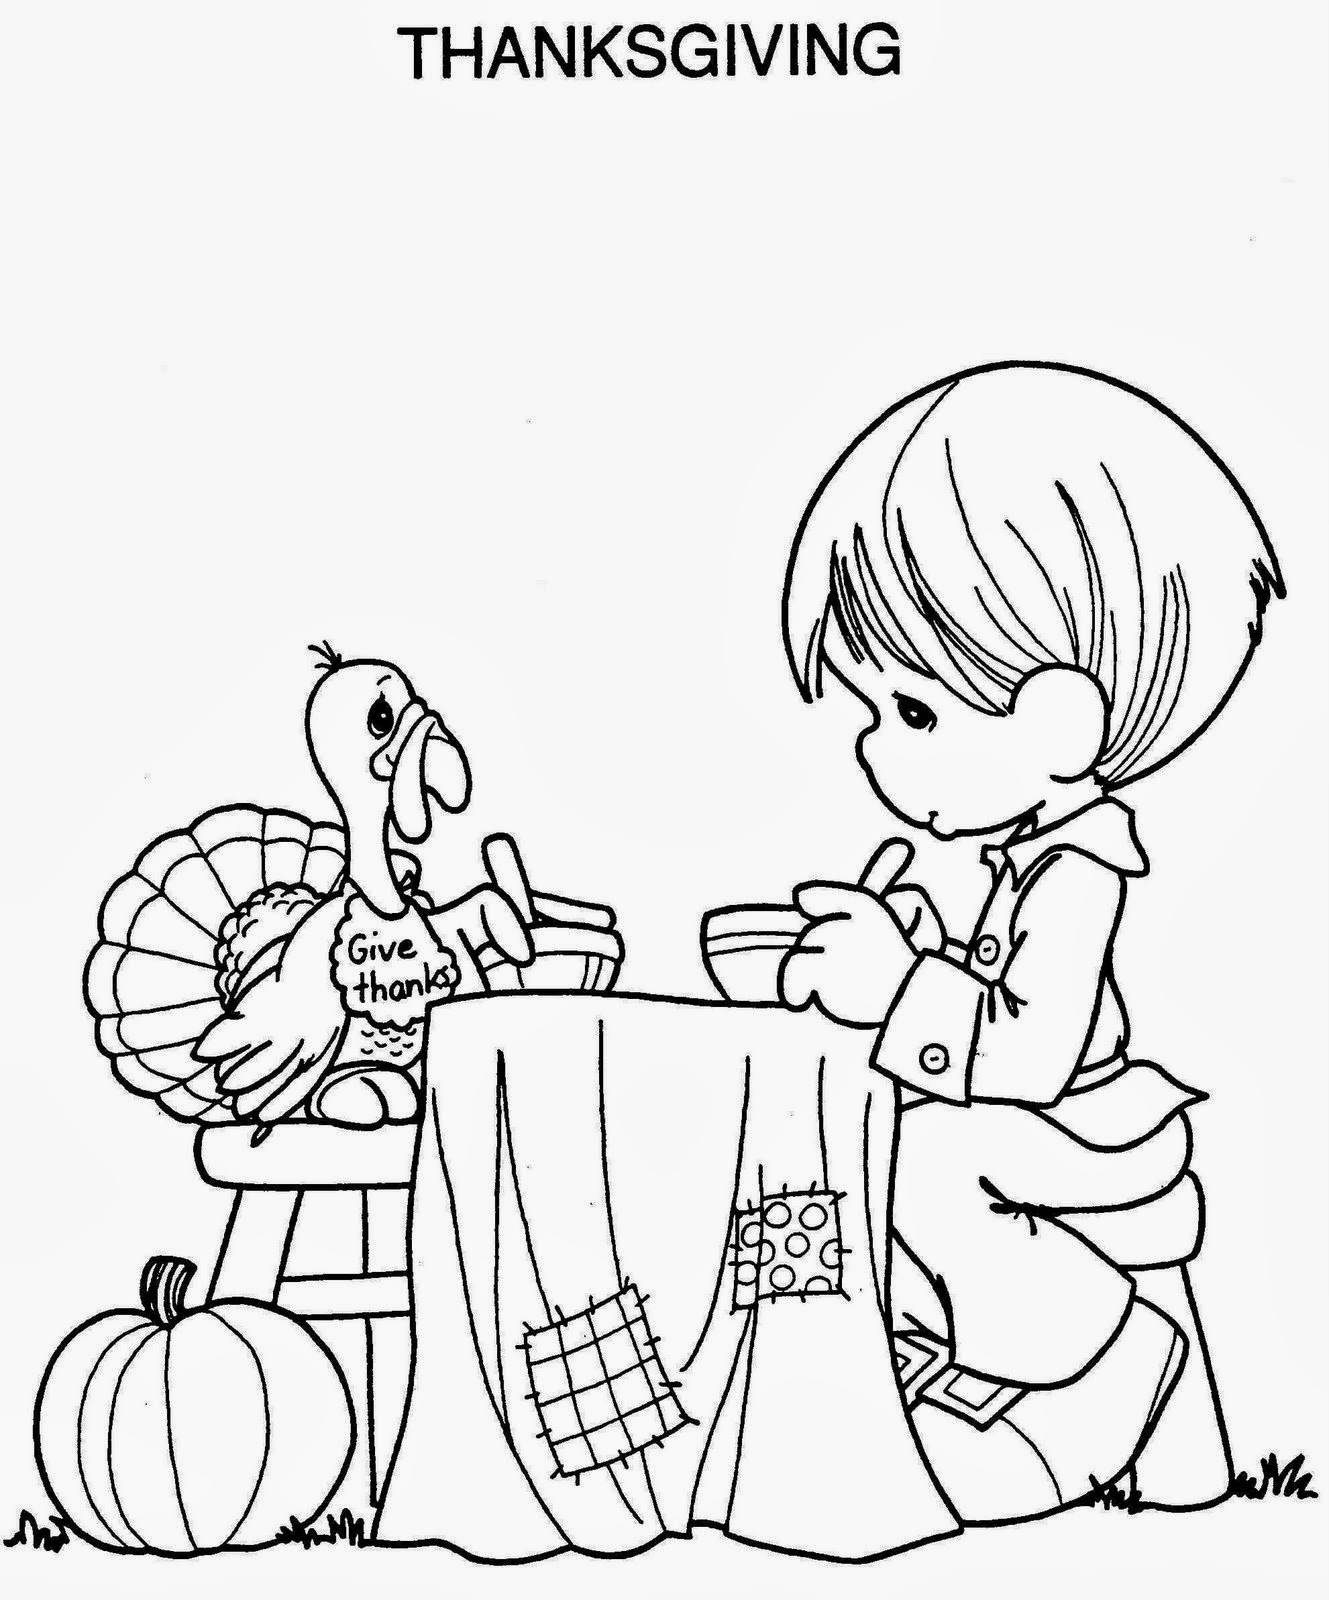 turkey printable coloring pages - thanksgiving day for coloring part 1